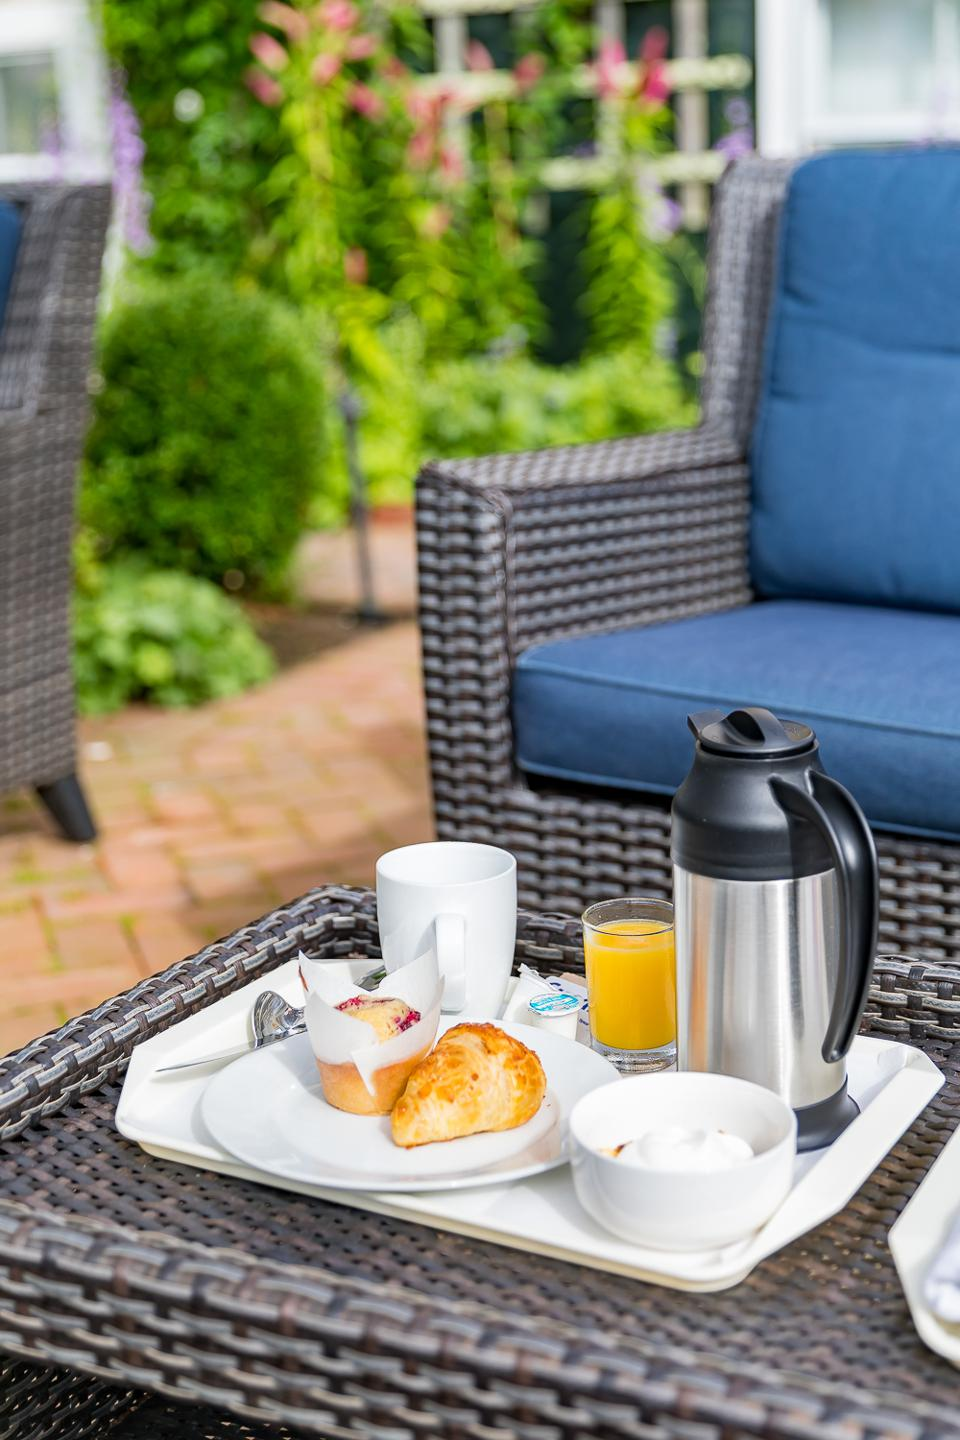 Nantucket, MA - A complimentary breakfast at the Brass Lantern Inn